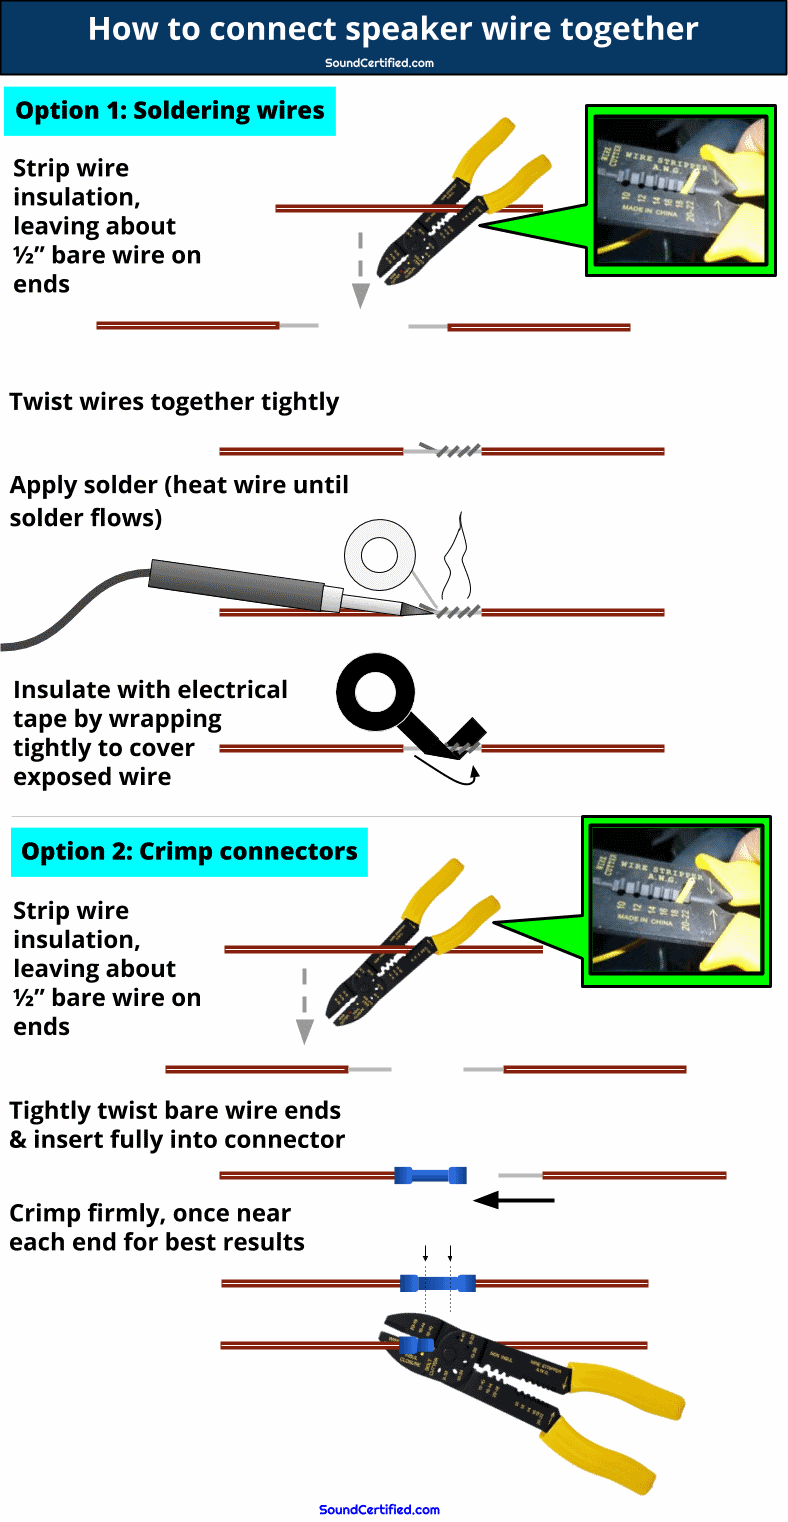 How to connect speaker wire together diagram